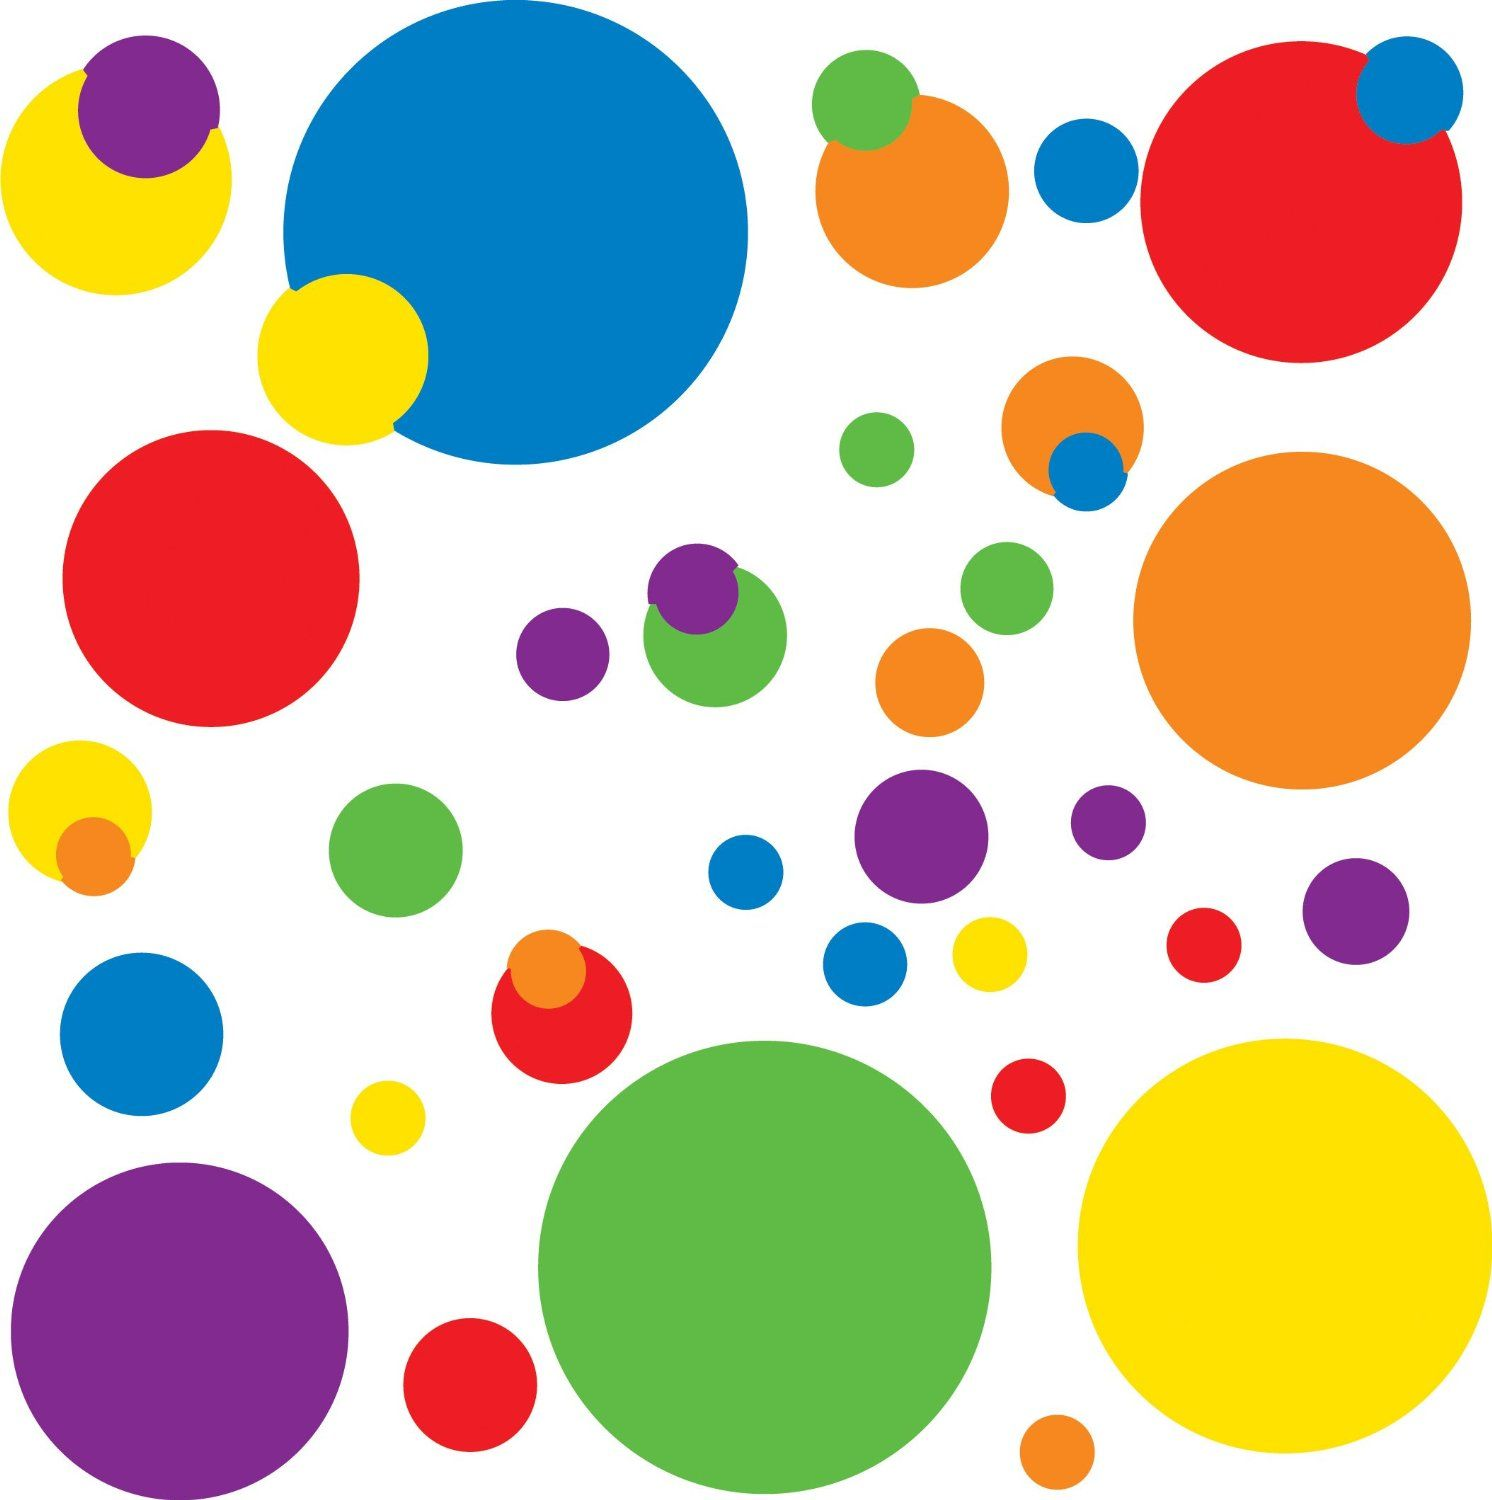 Wall colors for preschool rooms - Preschool Classroom Decoration Theme Your Teacher S Aide Polka Dot Classroom Theme